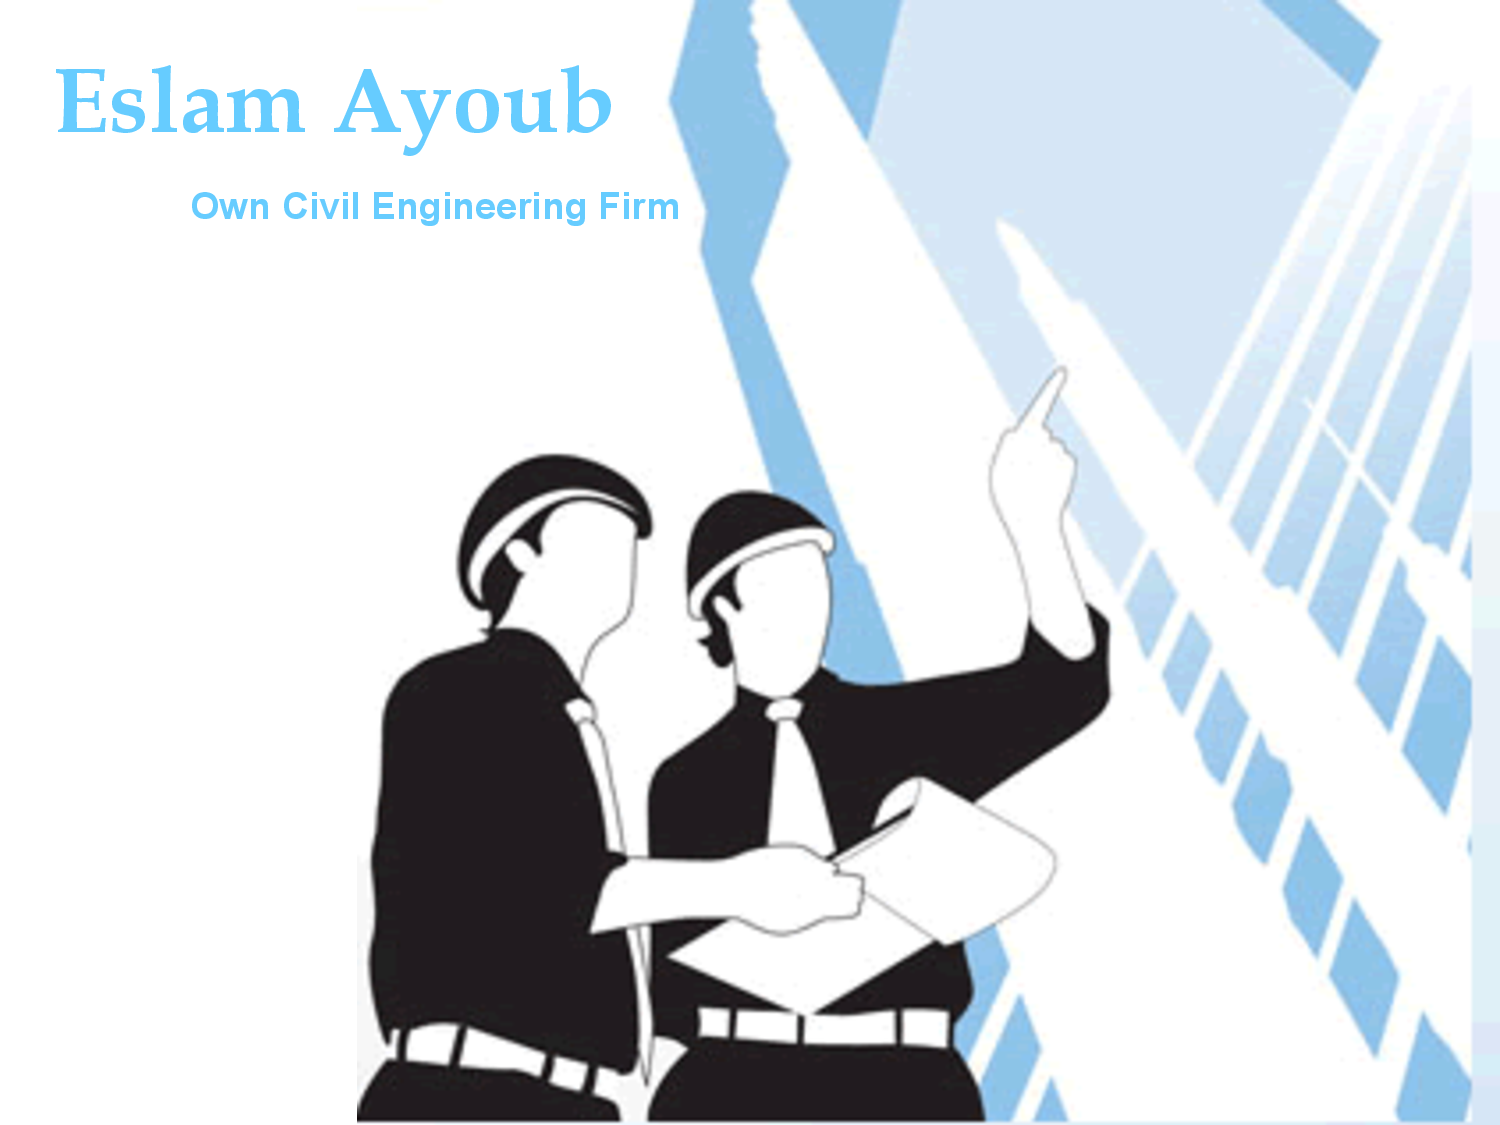 Eslam Ayoub has been an instrumental part of a team that